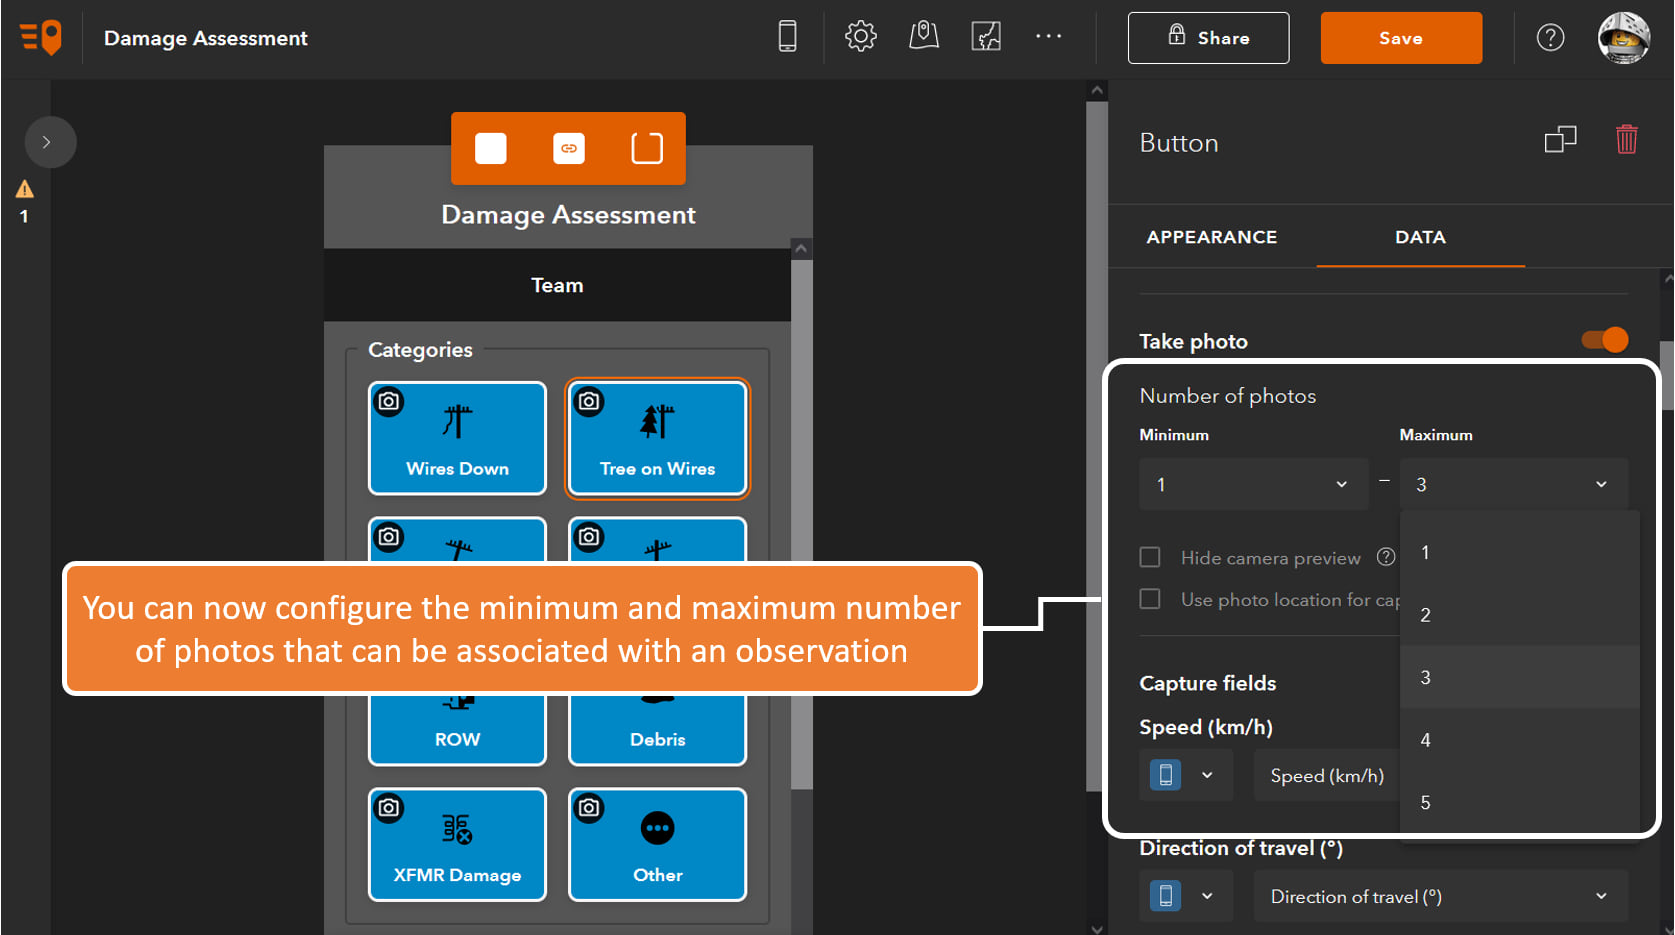 QuickCapture designer: You can now configure the minimum and maximum number of photos that can be associated with an observation